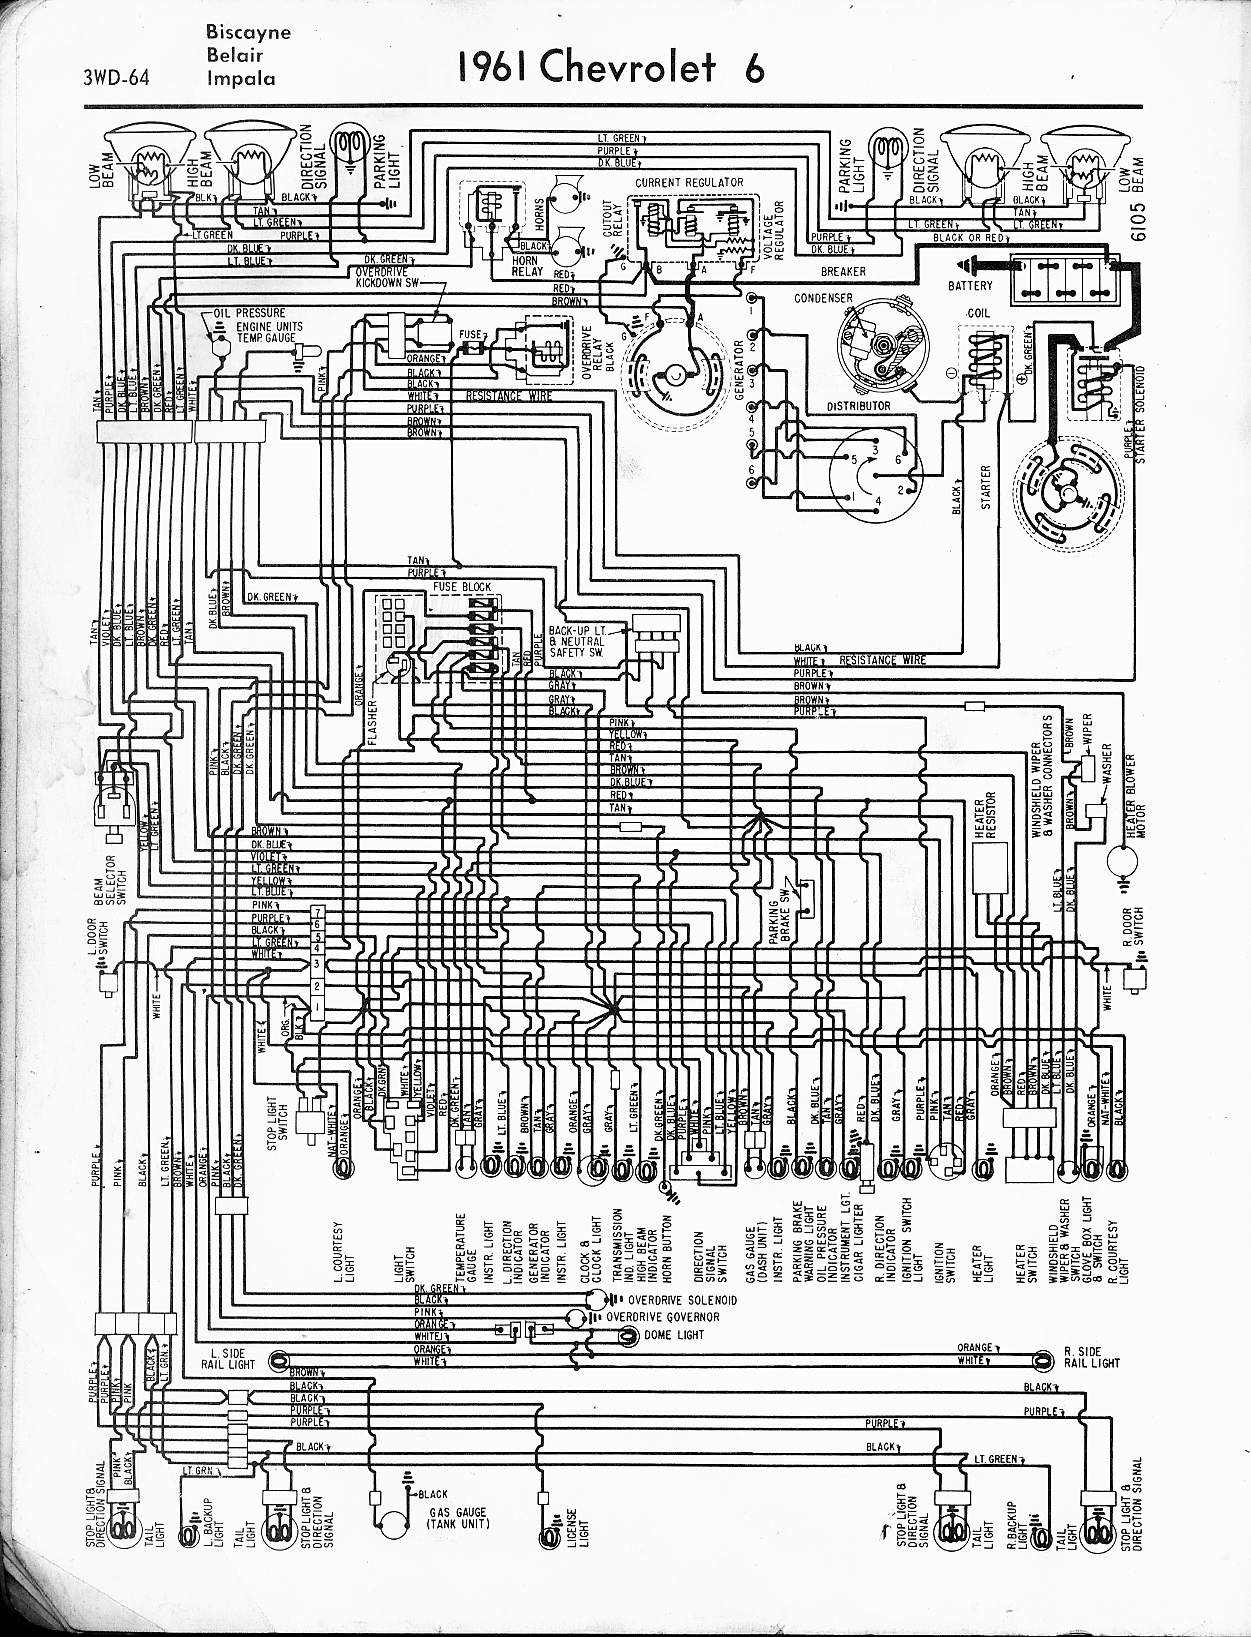 MWireChev61_3WD 064 57 65 chevy wiring diagrams 1957 bel air wiring diagram at gsmx.co